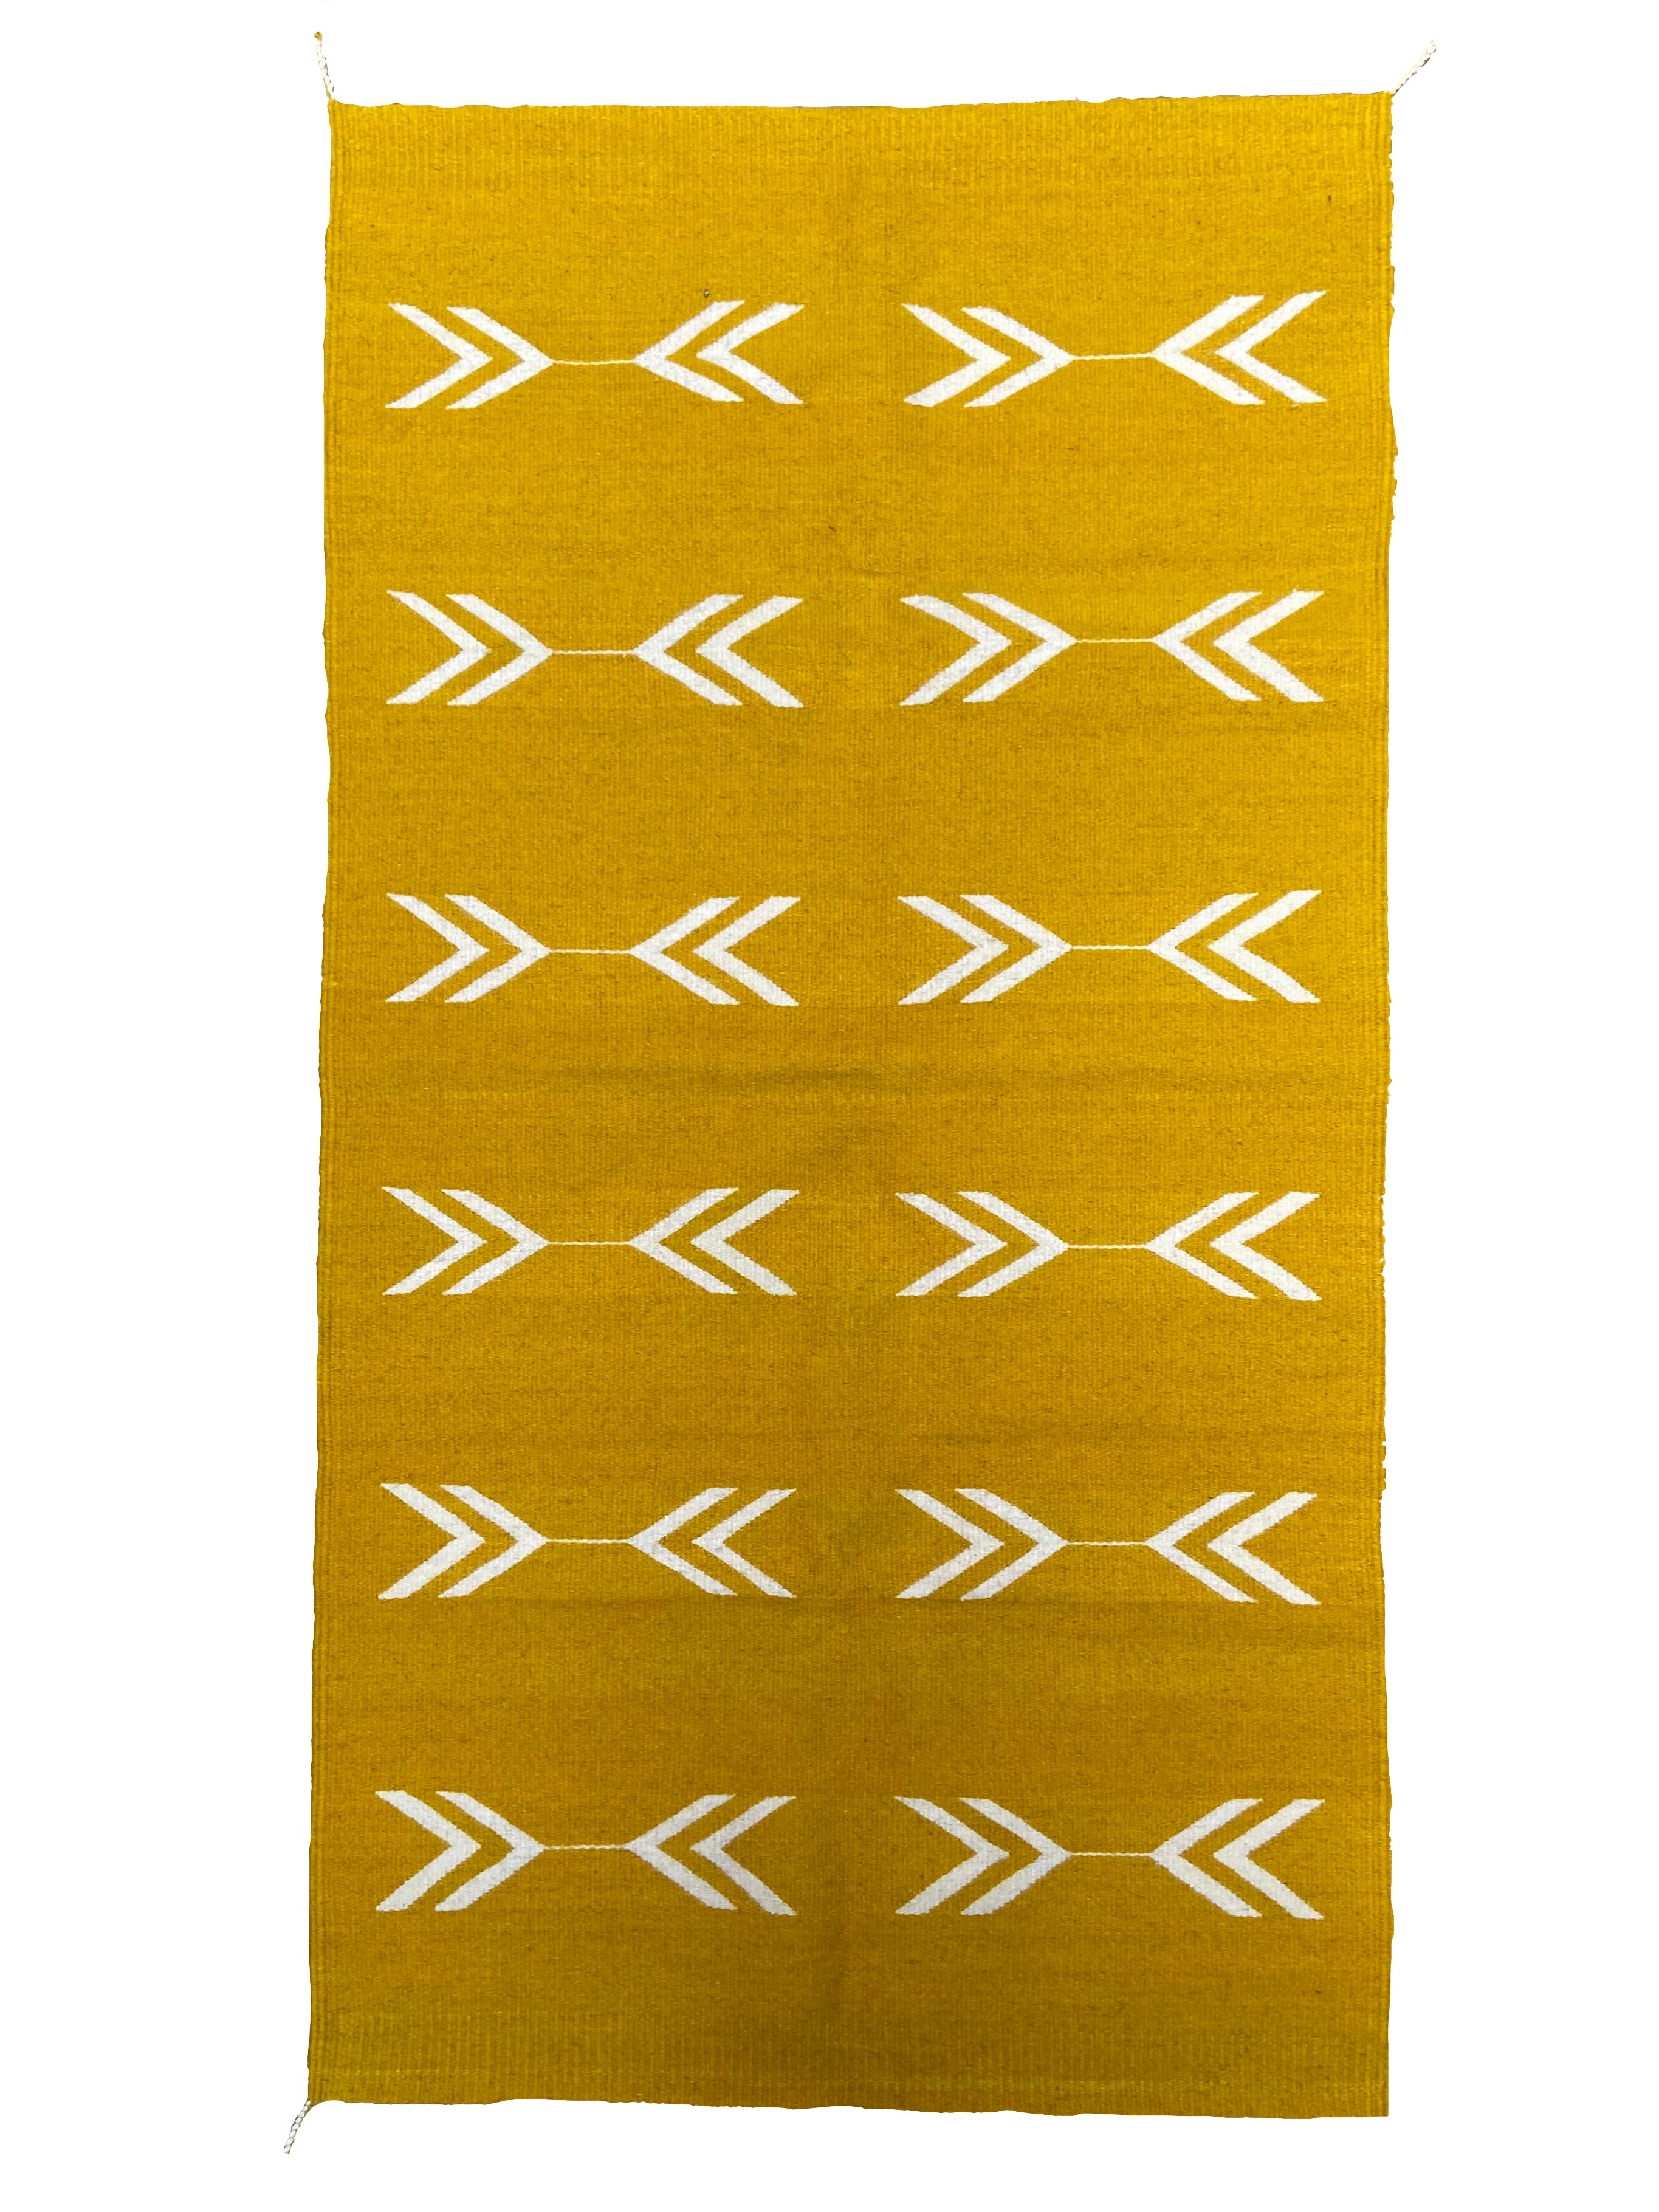 Zapotec wool rug made from natural dye